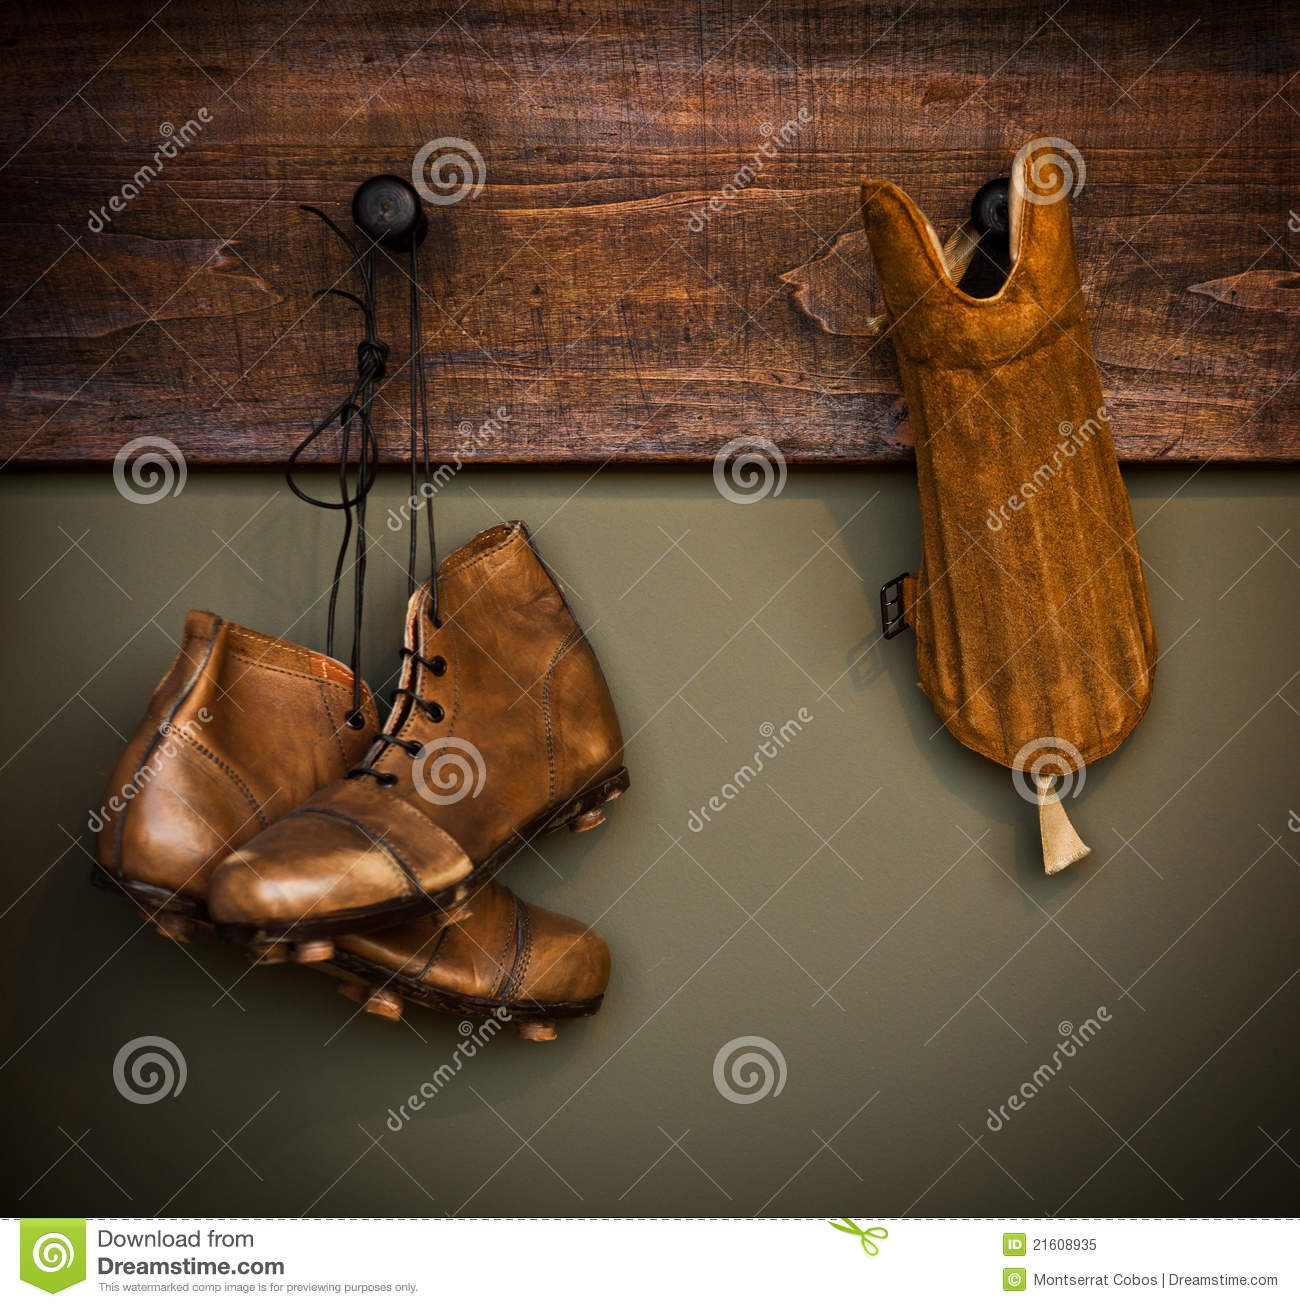 Hanging Shoe Rack Vintage Football Boots And Shin Guard Royalty Free Stock